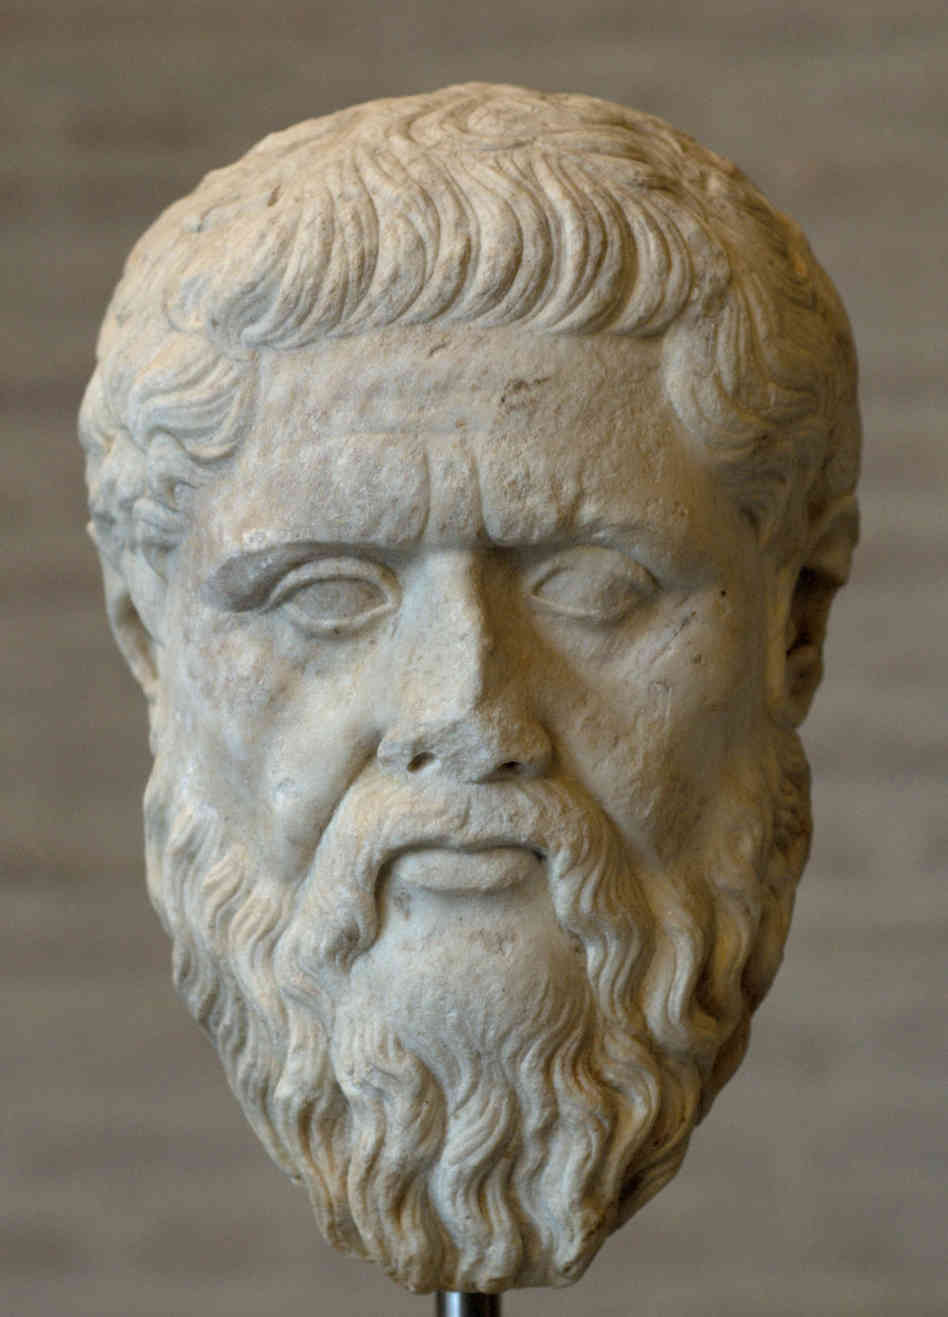 Plato, a philosopher from classical Greece & an influential figure in Western philosophy - Google Images